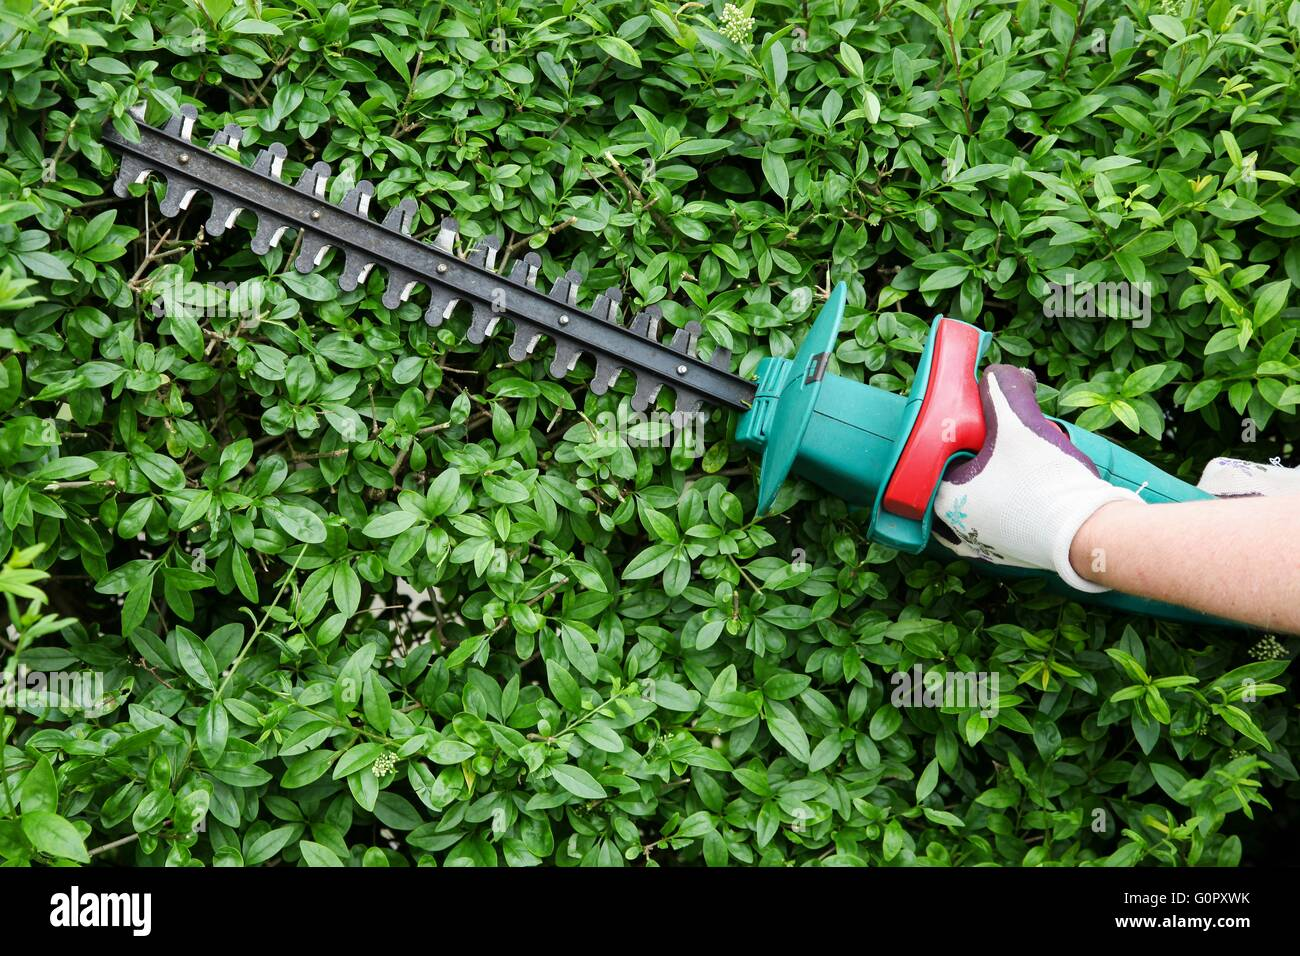 Trimming garden hedge with electrical hedge trimmer - Stock Image